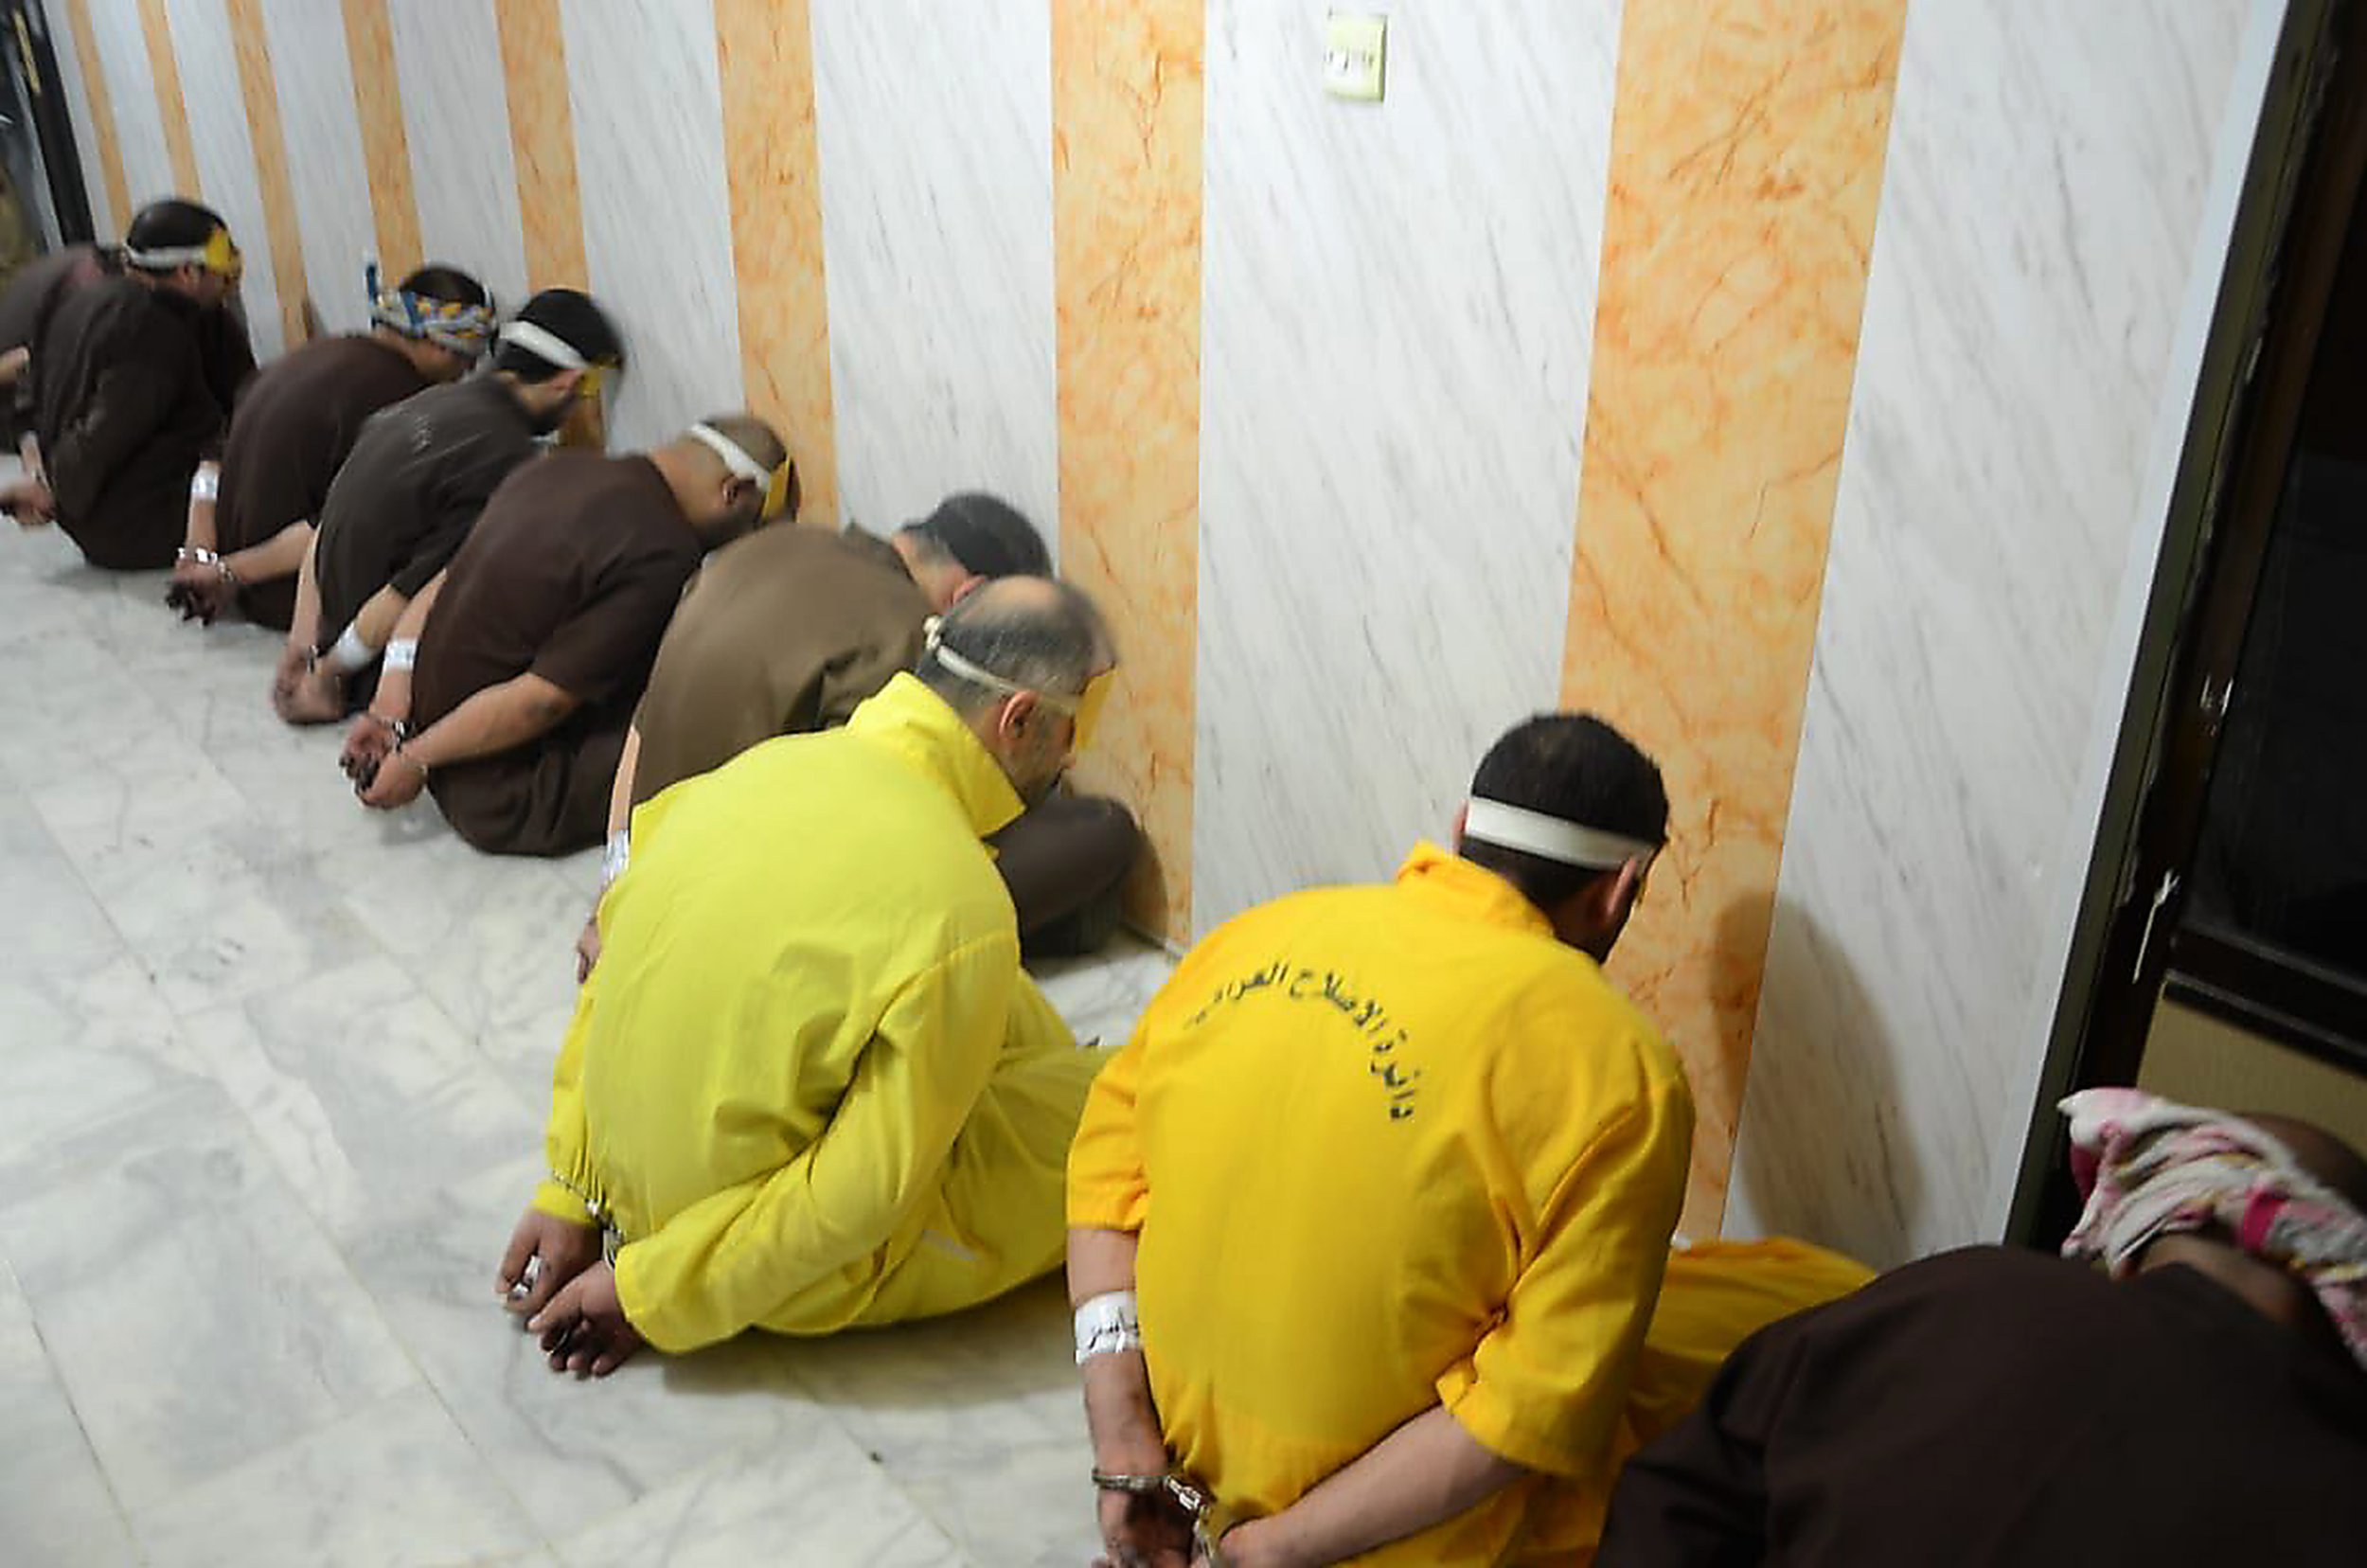 "TOPSHOT - EDITORS NOTE: Graphic content / A handout picture released by the Iraqi Justice Ministry on June 29, 2018 shows blindfolded and handcuffed jihadists of the Islamic State group who have been condemned to death waiting for their sentences to be executed. Iraq executed a dozen death row jihadists on the order of Prime Minister Haider al-Abadi, his office said today, in retaliation for the Islamic State group's execution of eight captives. The executions on June 28 came shortly after Abadi ordered the ""immediate"" implementation of the death sentences of hundreds of convicted jihadists in response to the killings by IS. / AFP PHOTO / Iraq Justice Minister / HandoutHANDOUT/AFP/Getty Images"